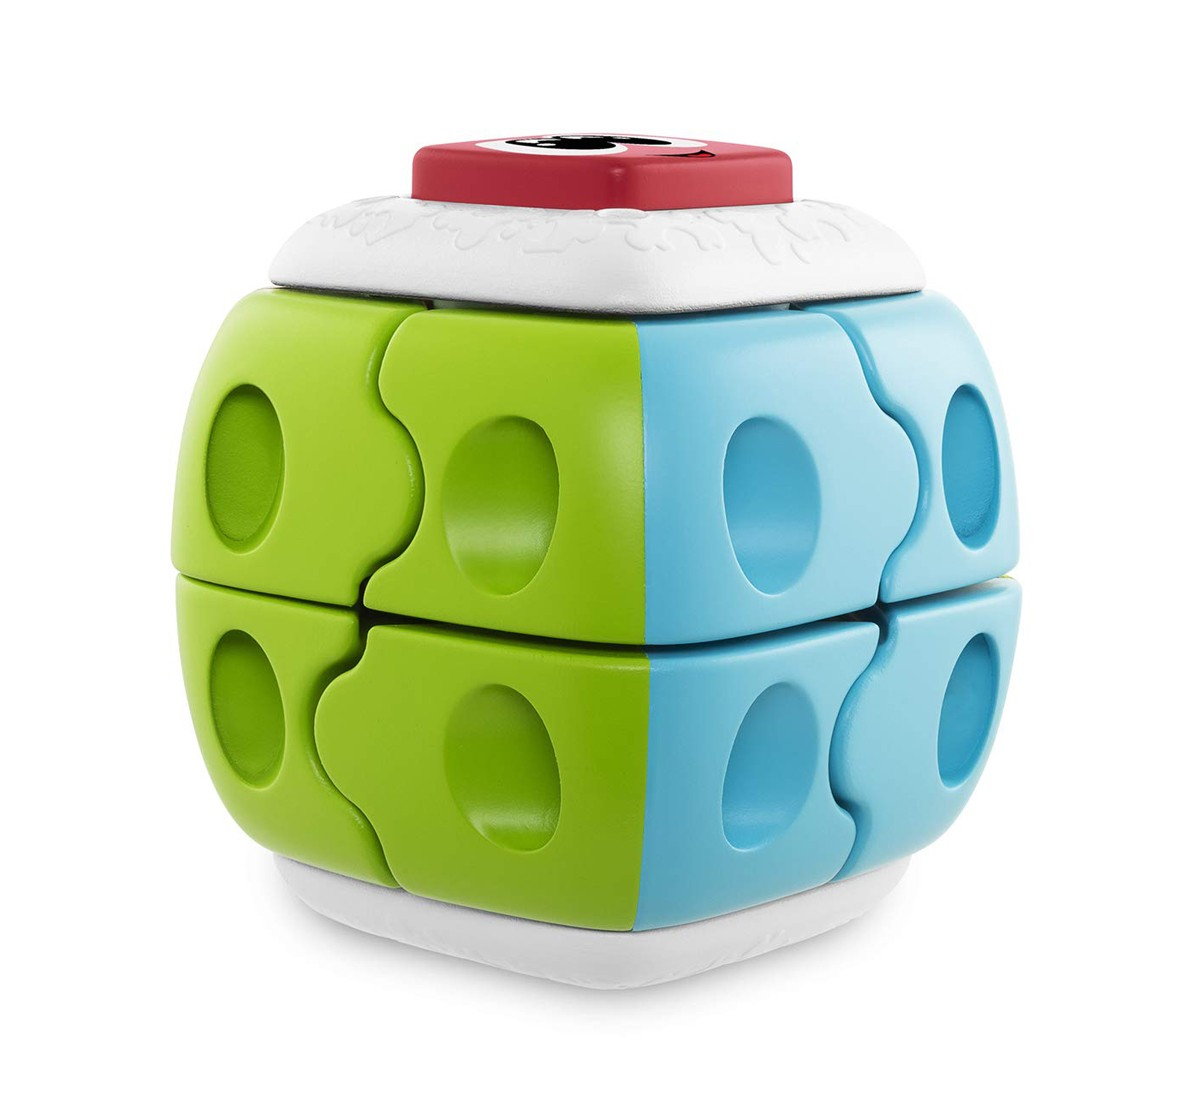 Chicco 2 IN 1 Q-Bricks Puzzle Toy for Kids age 18M +